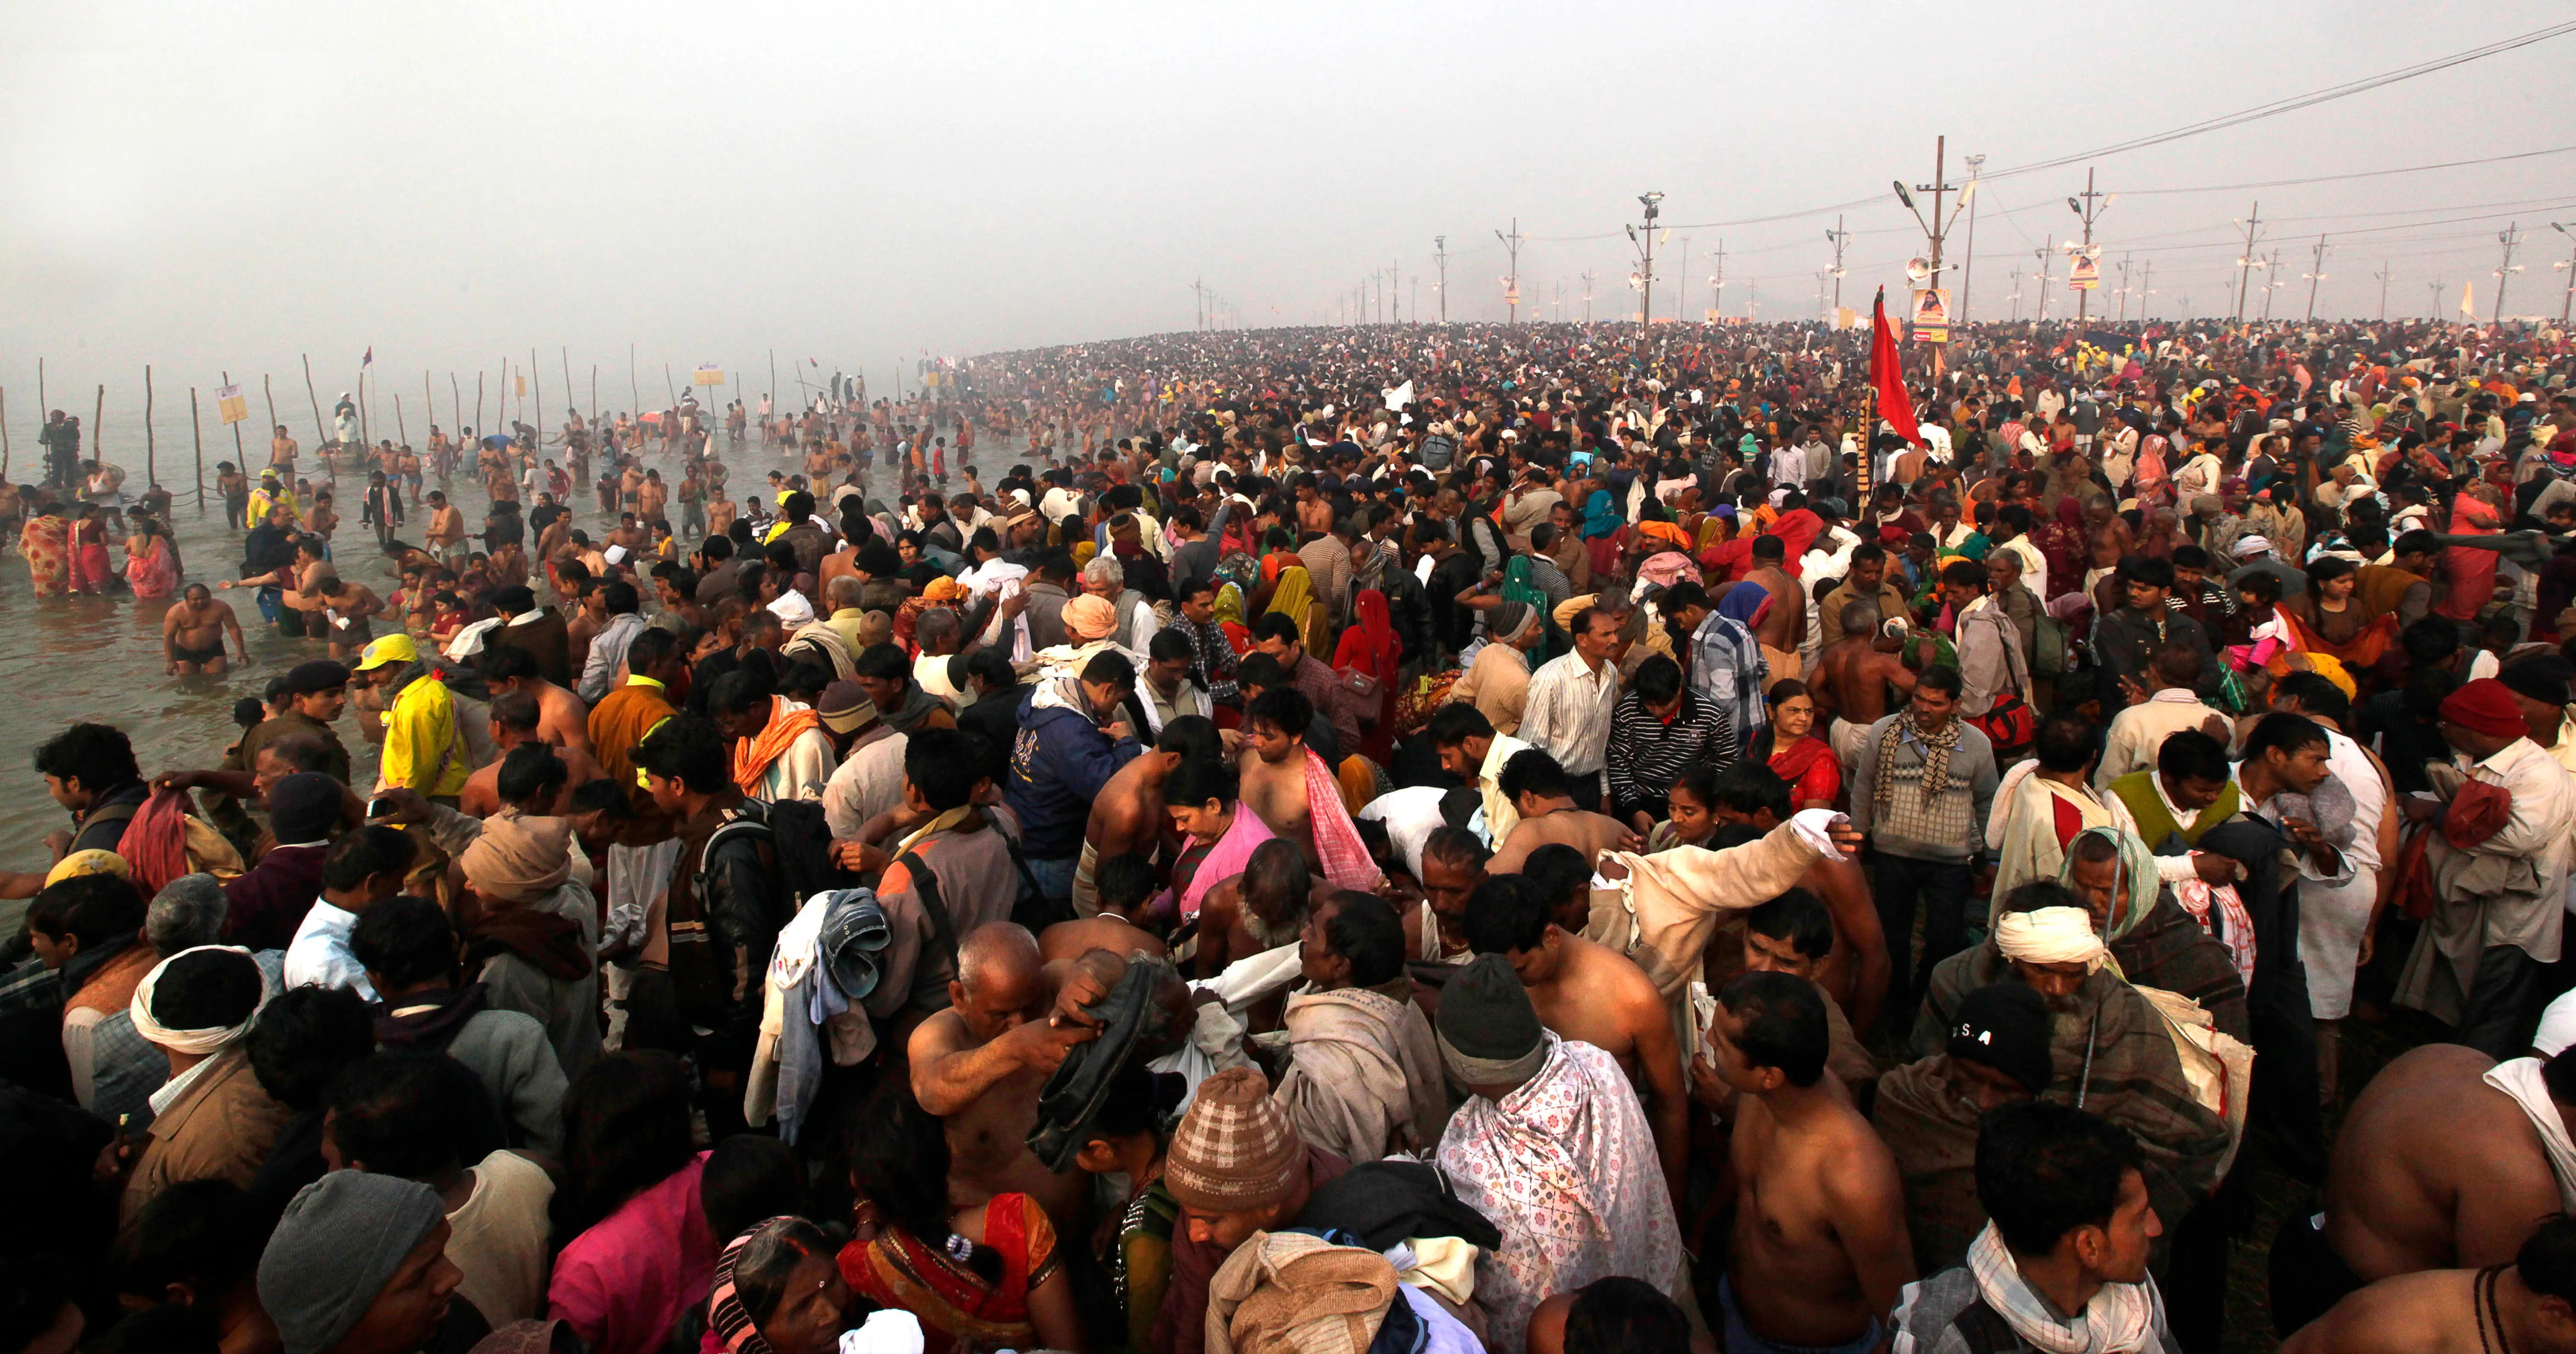 Over 100 million people Hindu devotees are expected to attend the Maha Kumbh Mela.